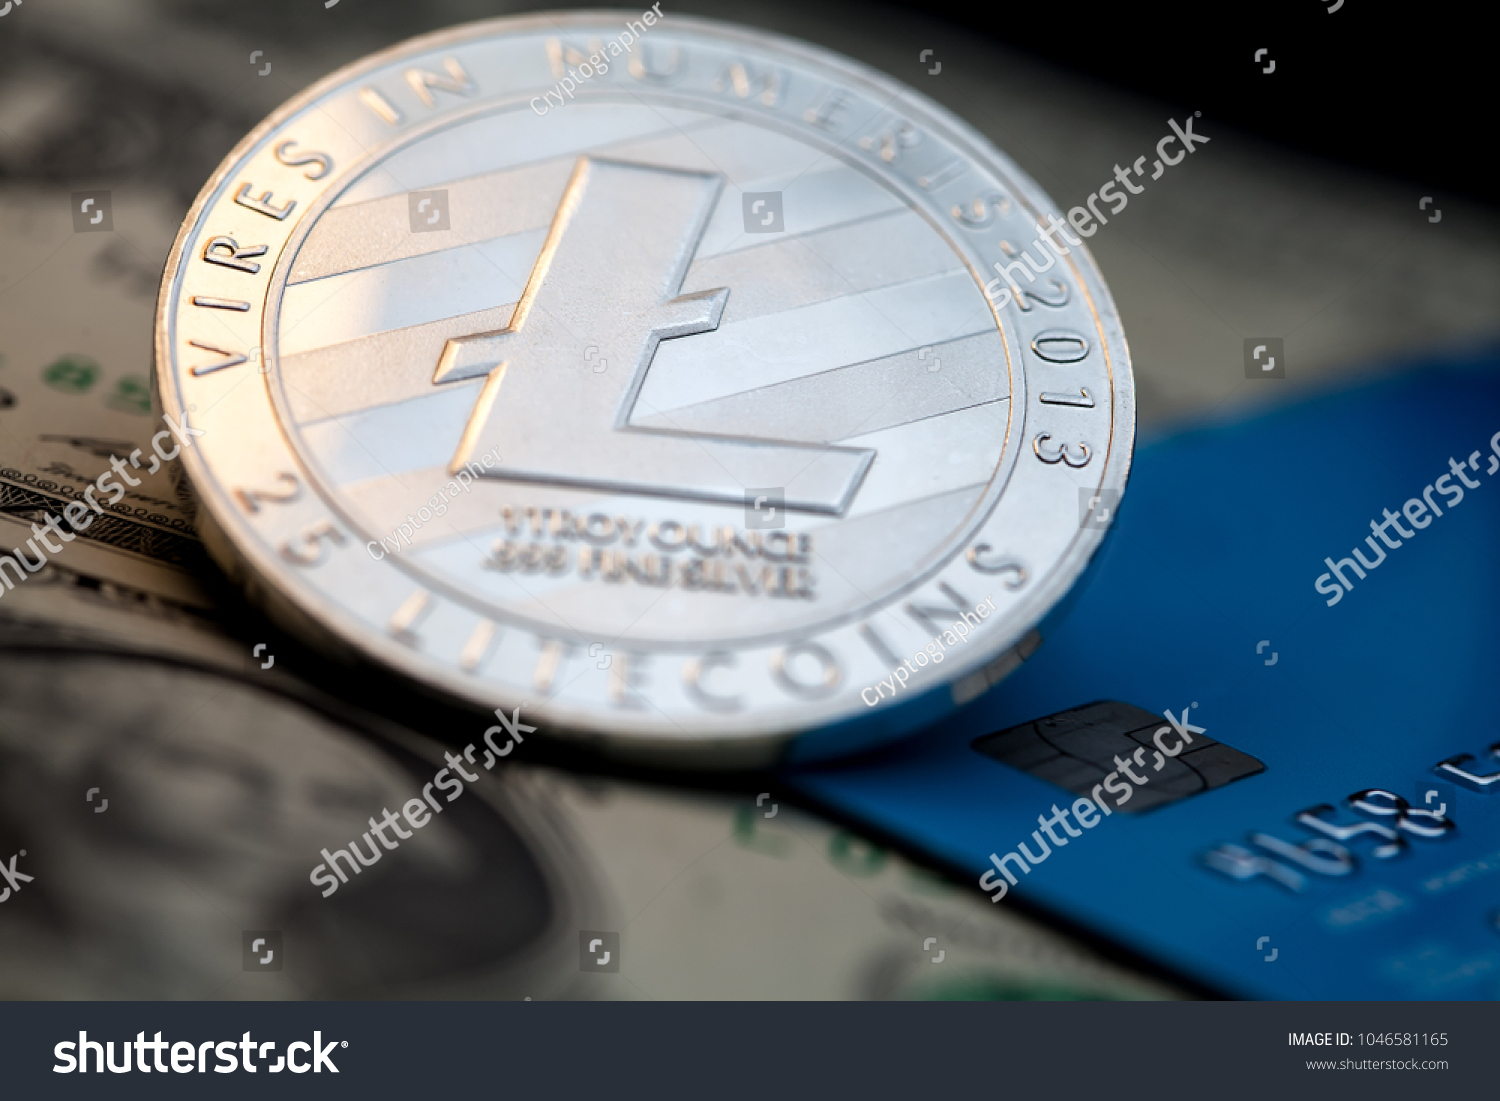 silver token cryptocurrency